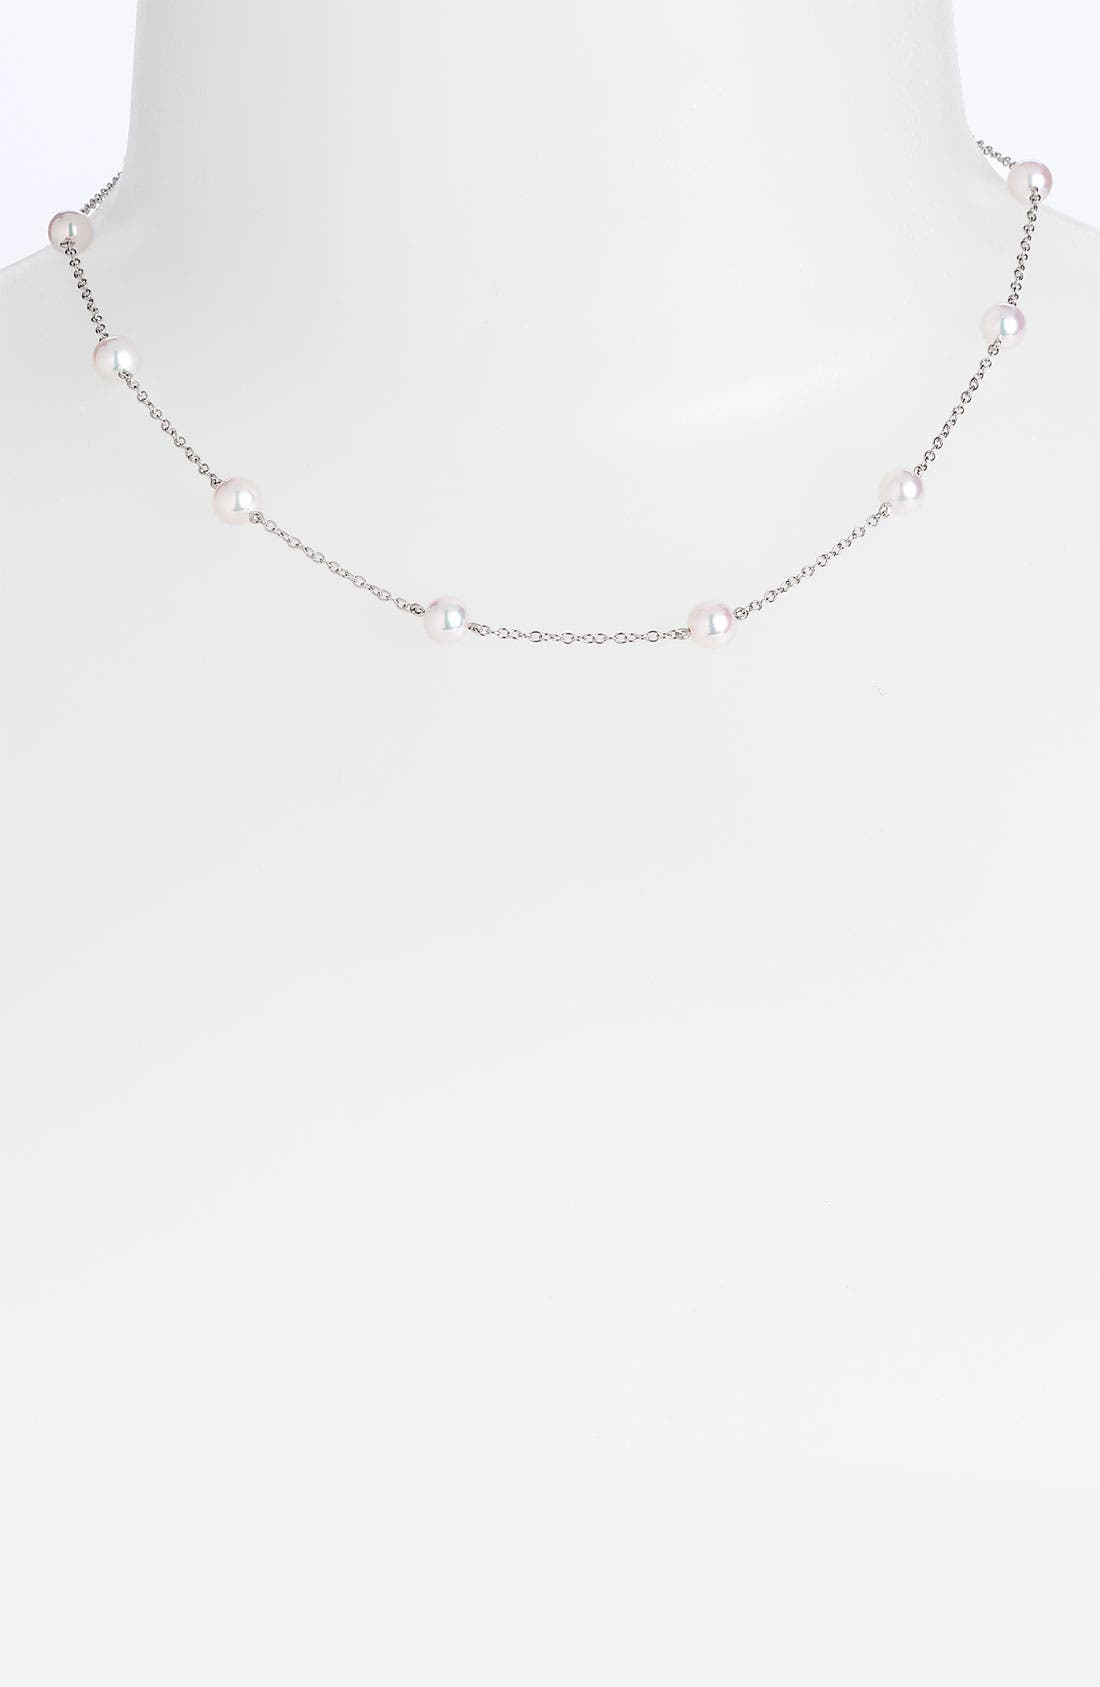 Main Image - Mikimoto Akoya Cultured Pearl & Chain Necklace